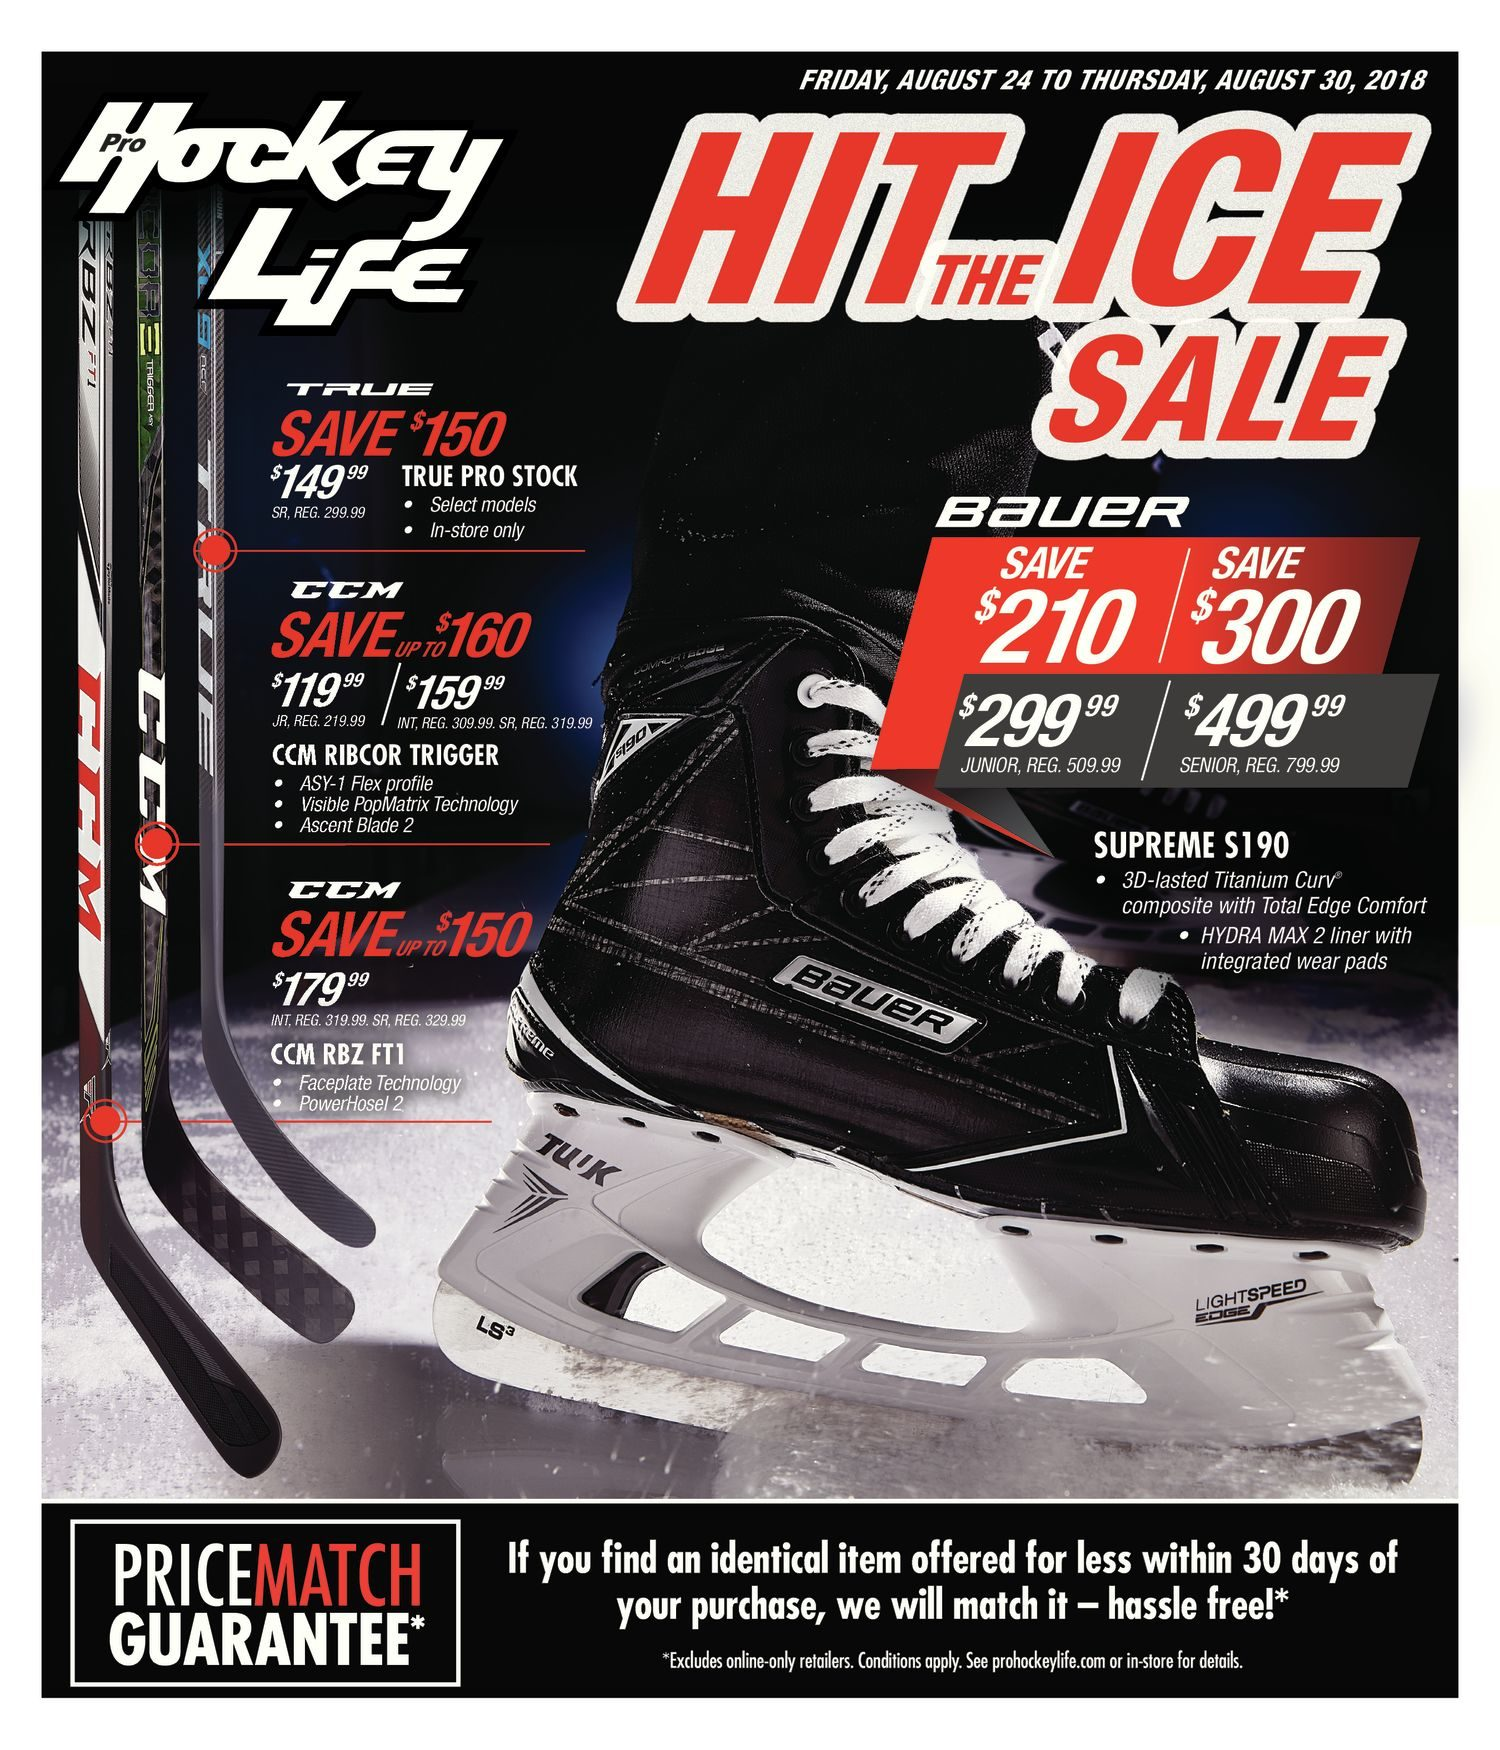 c72972a50a0 Pro Hockey Life Weekly Flyer - Hit The Ice Sale - Aug 24 – 30 -  RedFlagDeals.com